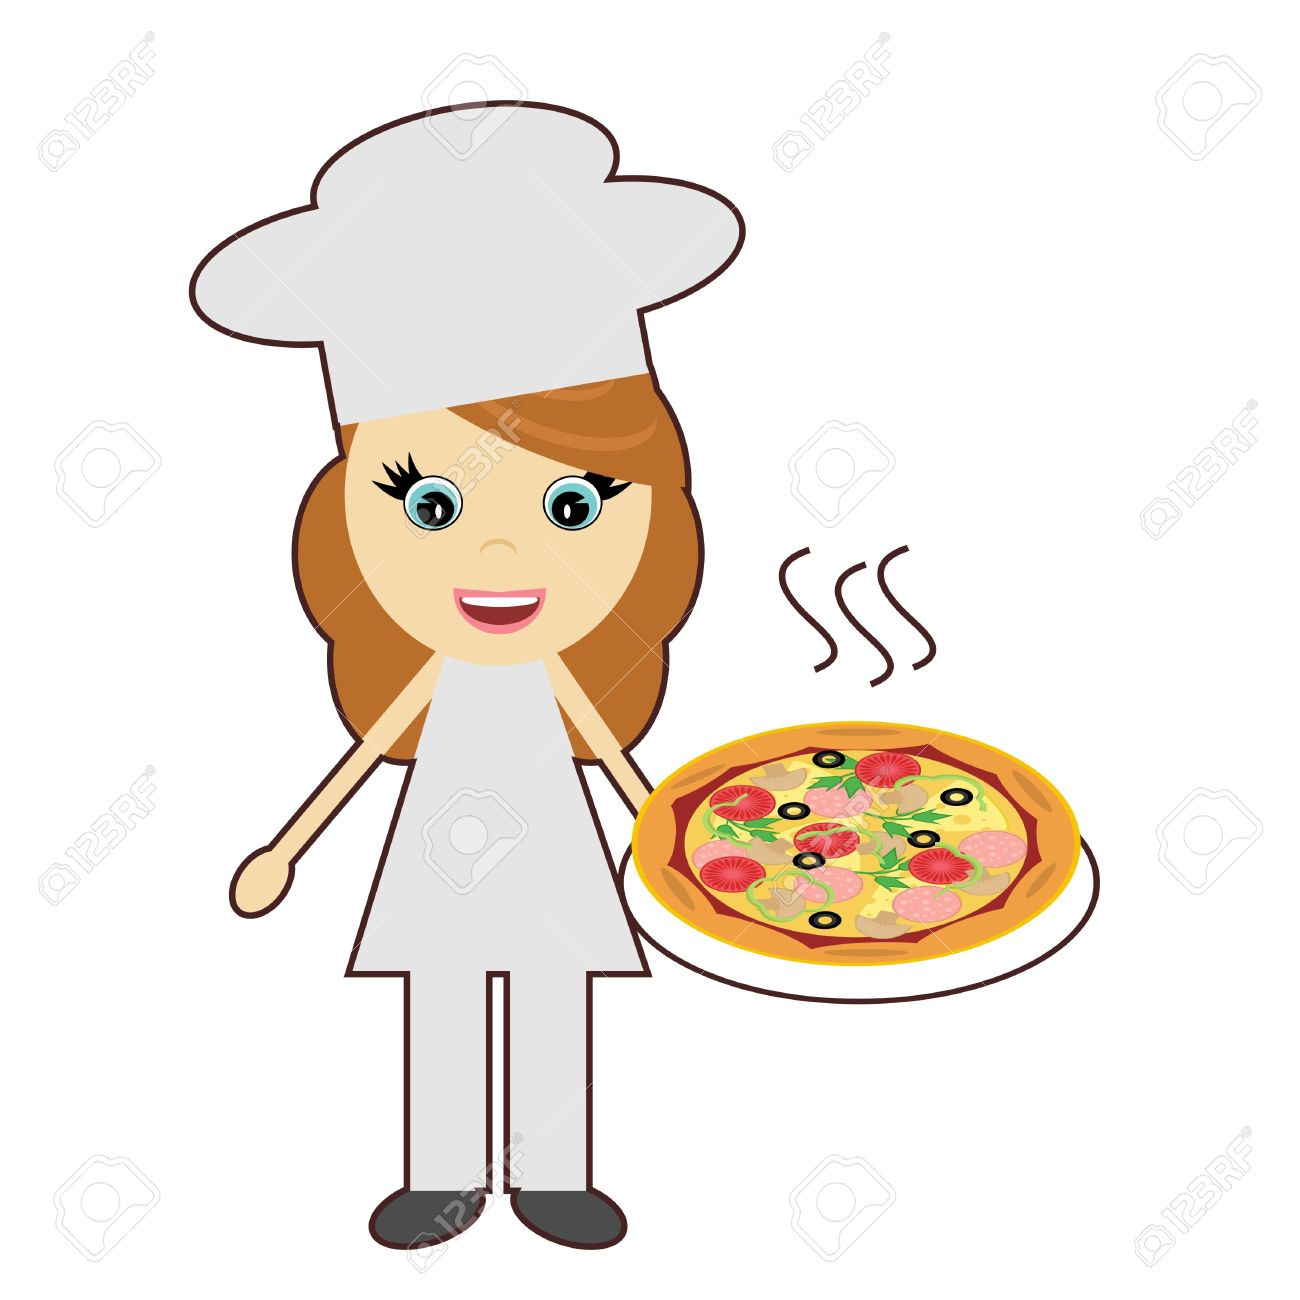 female chef with pizza on white background royalty free cliparts rh 123rf com cartoon female chef clipart black female chef clipart